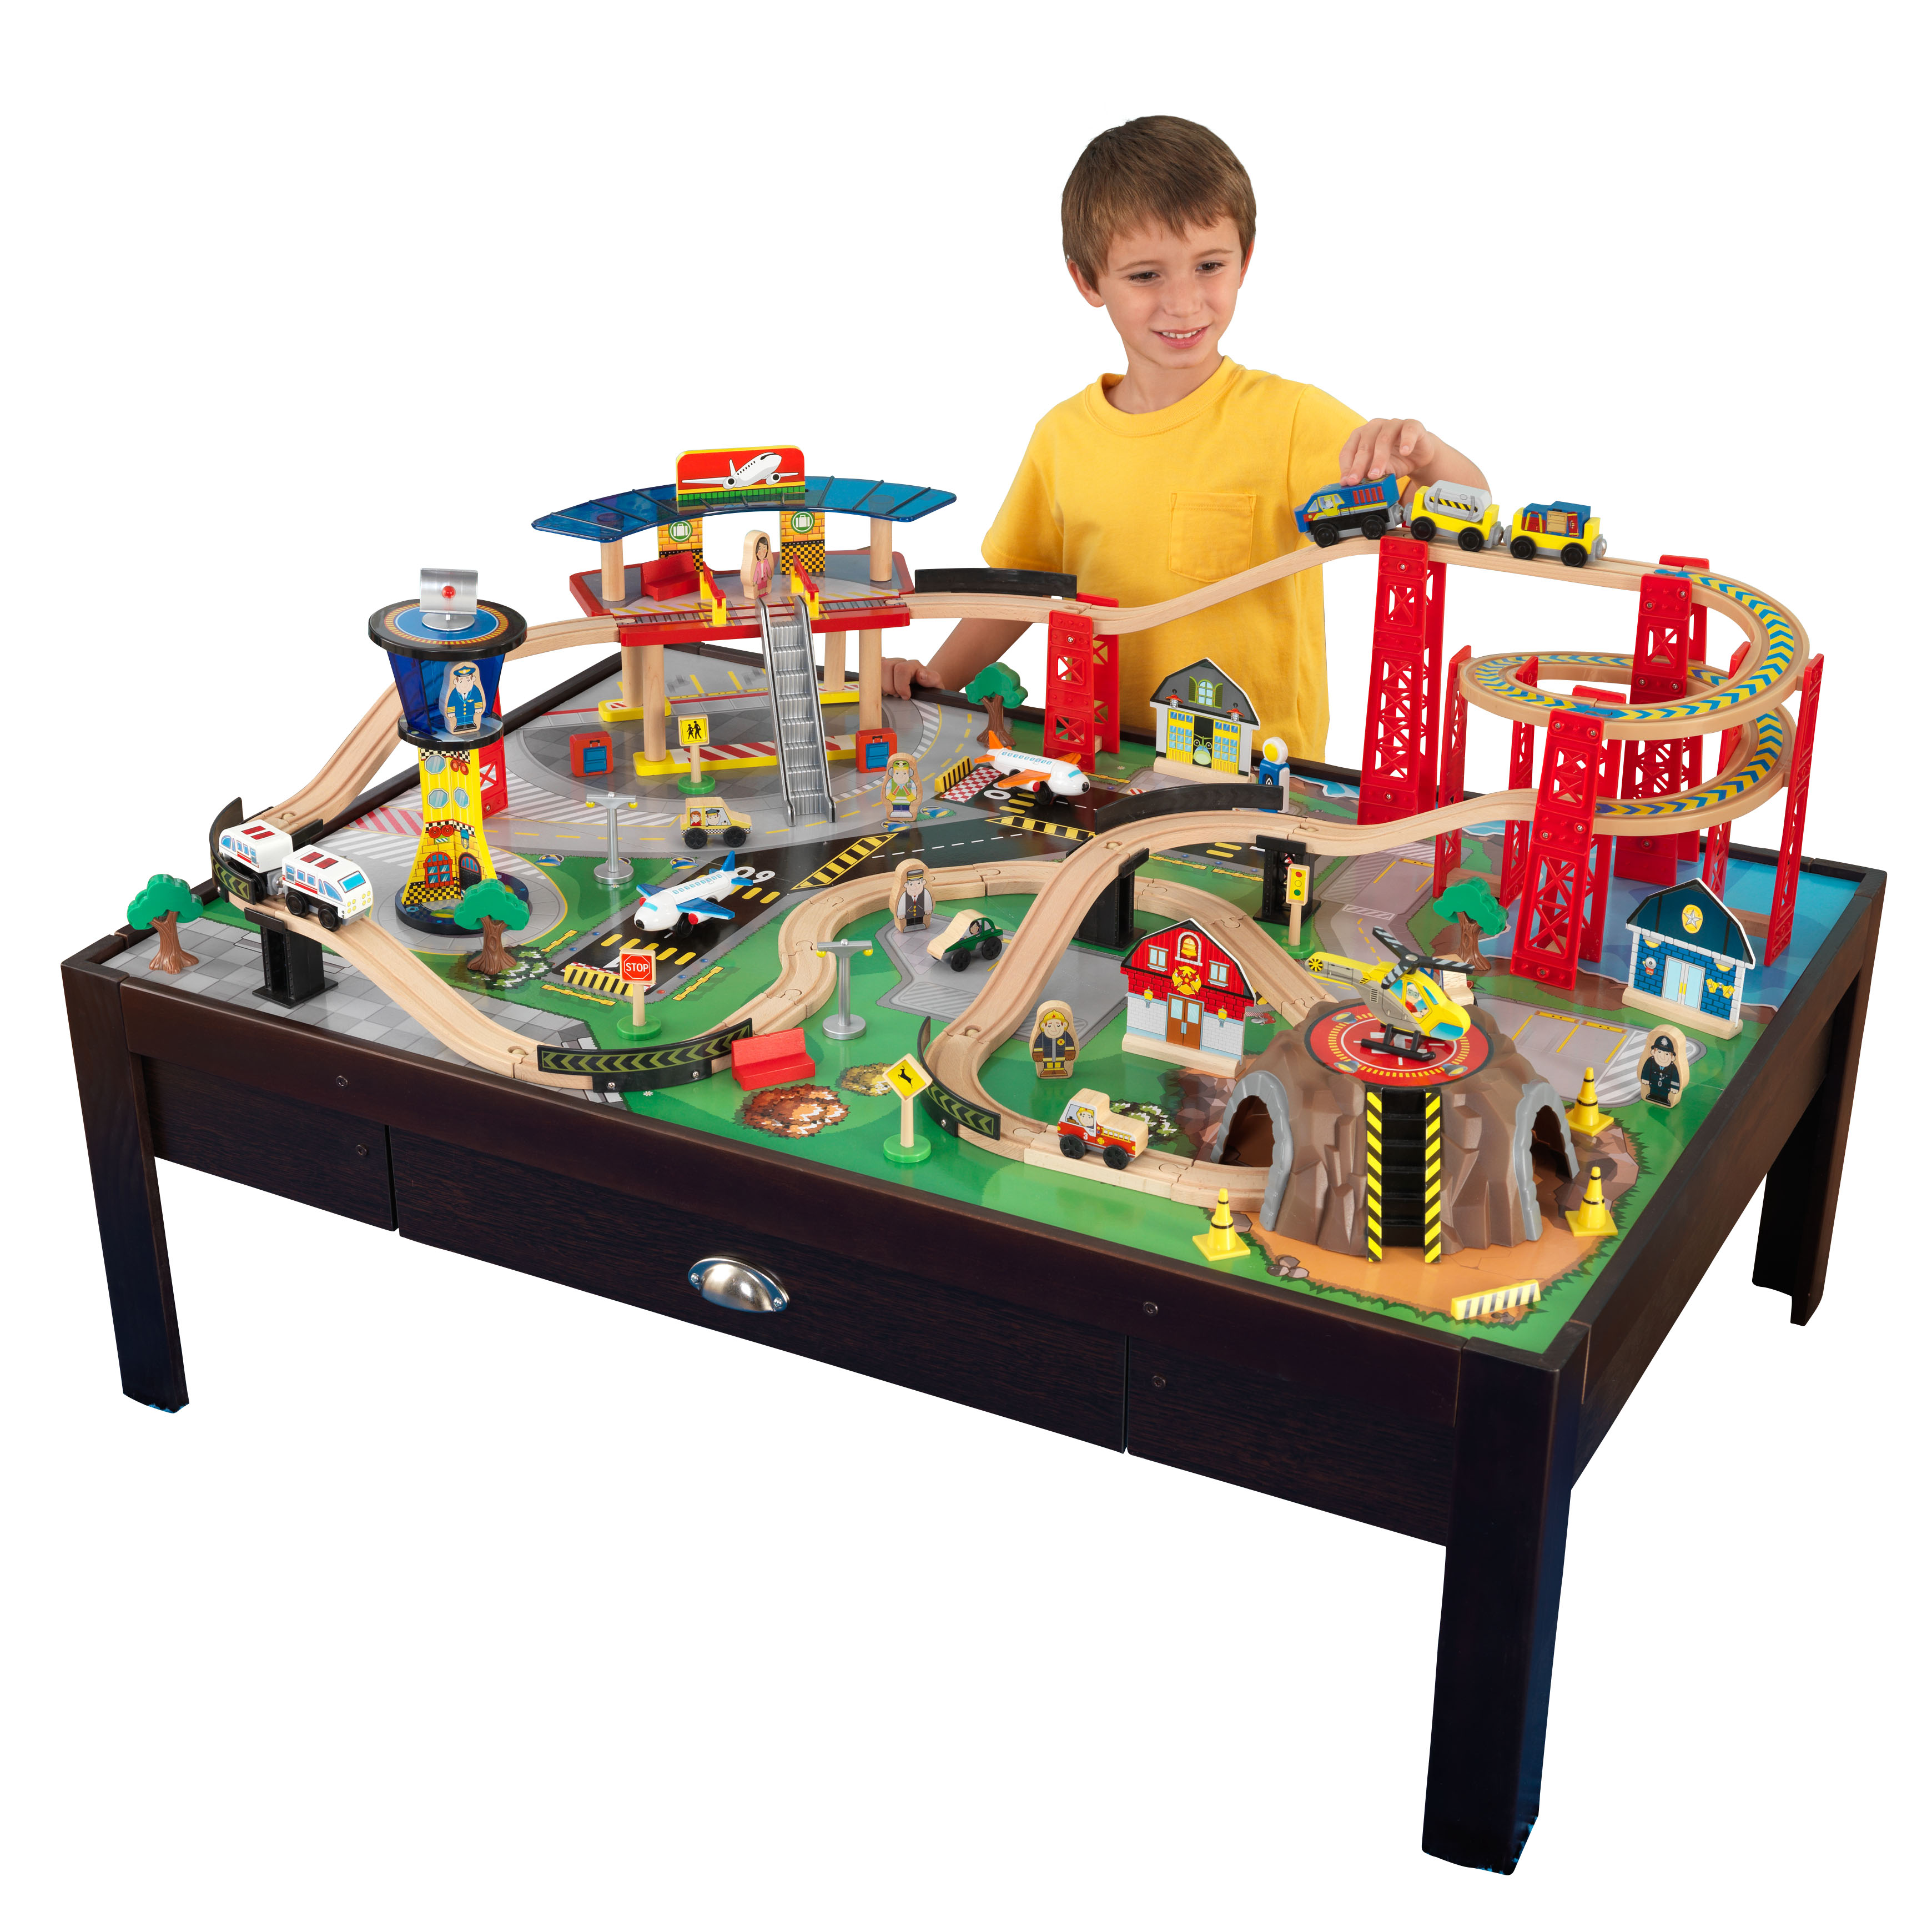 Details about KidKraft: Airport Express Espresso Train Set/Table